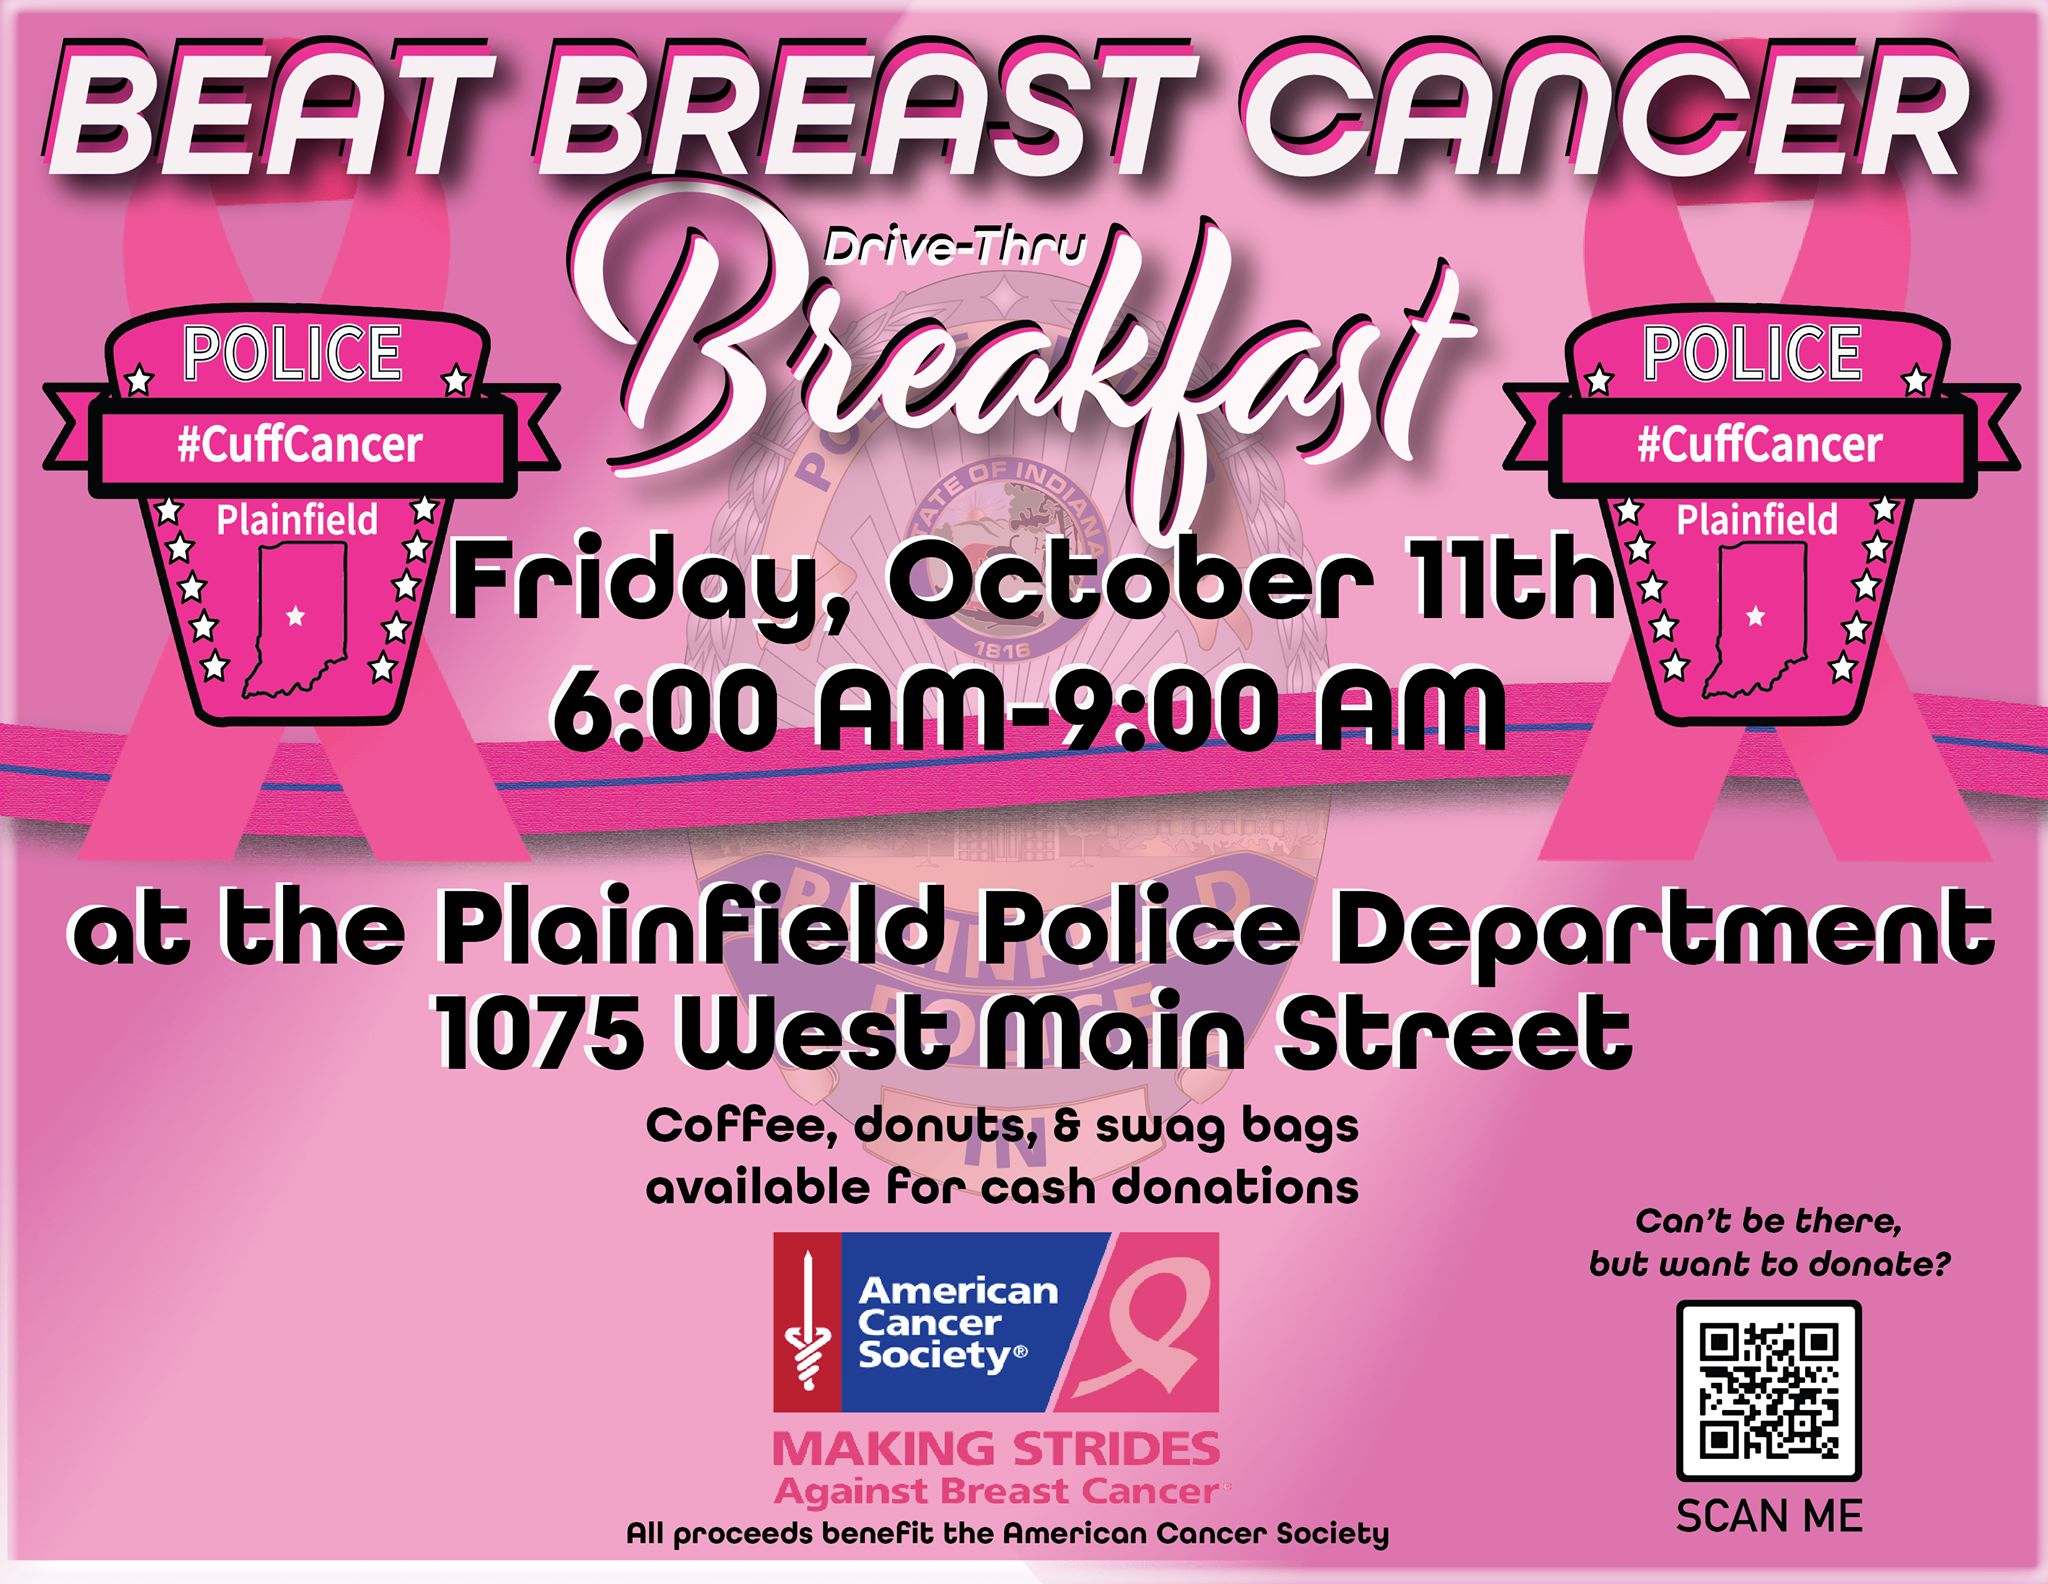 PPD's Beat Breast Cancer Drive-Thru Breakfast